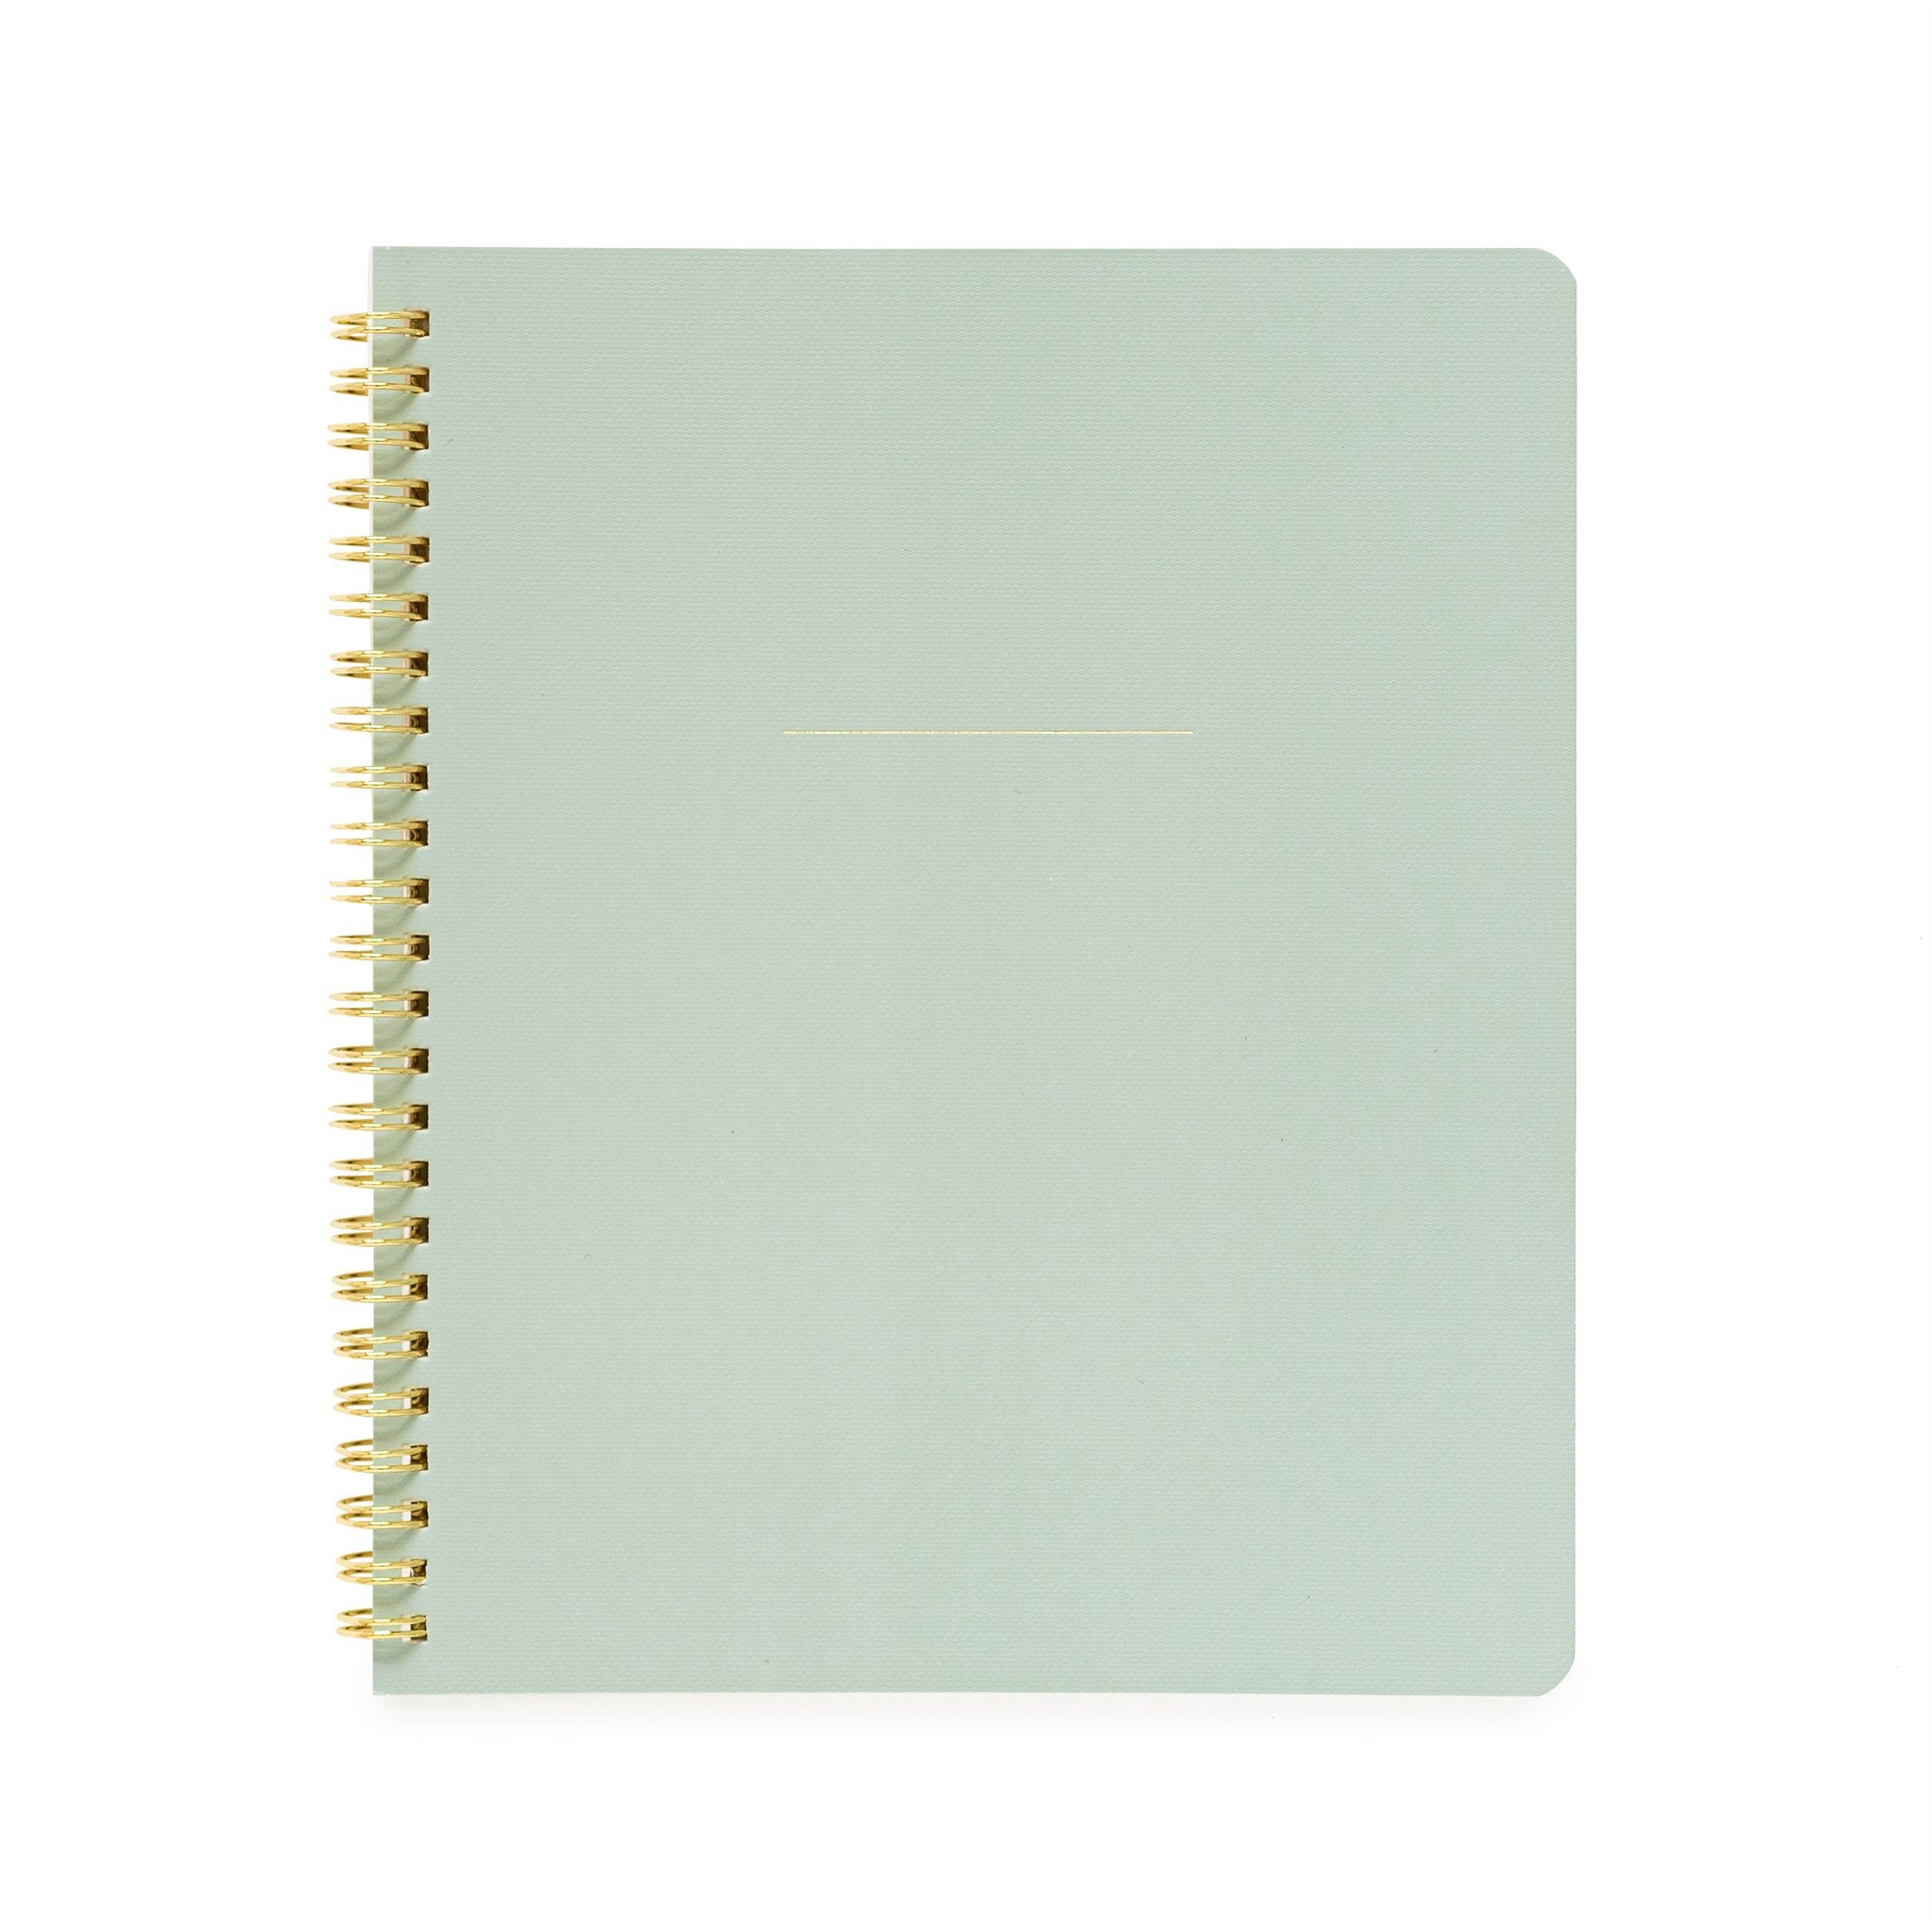 Spiral Notebook Office Green